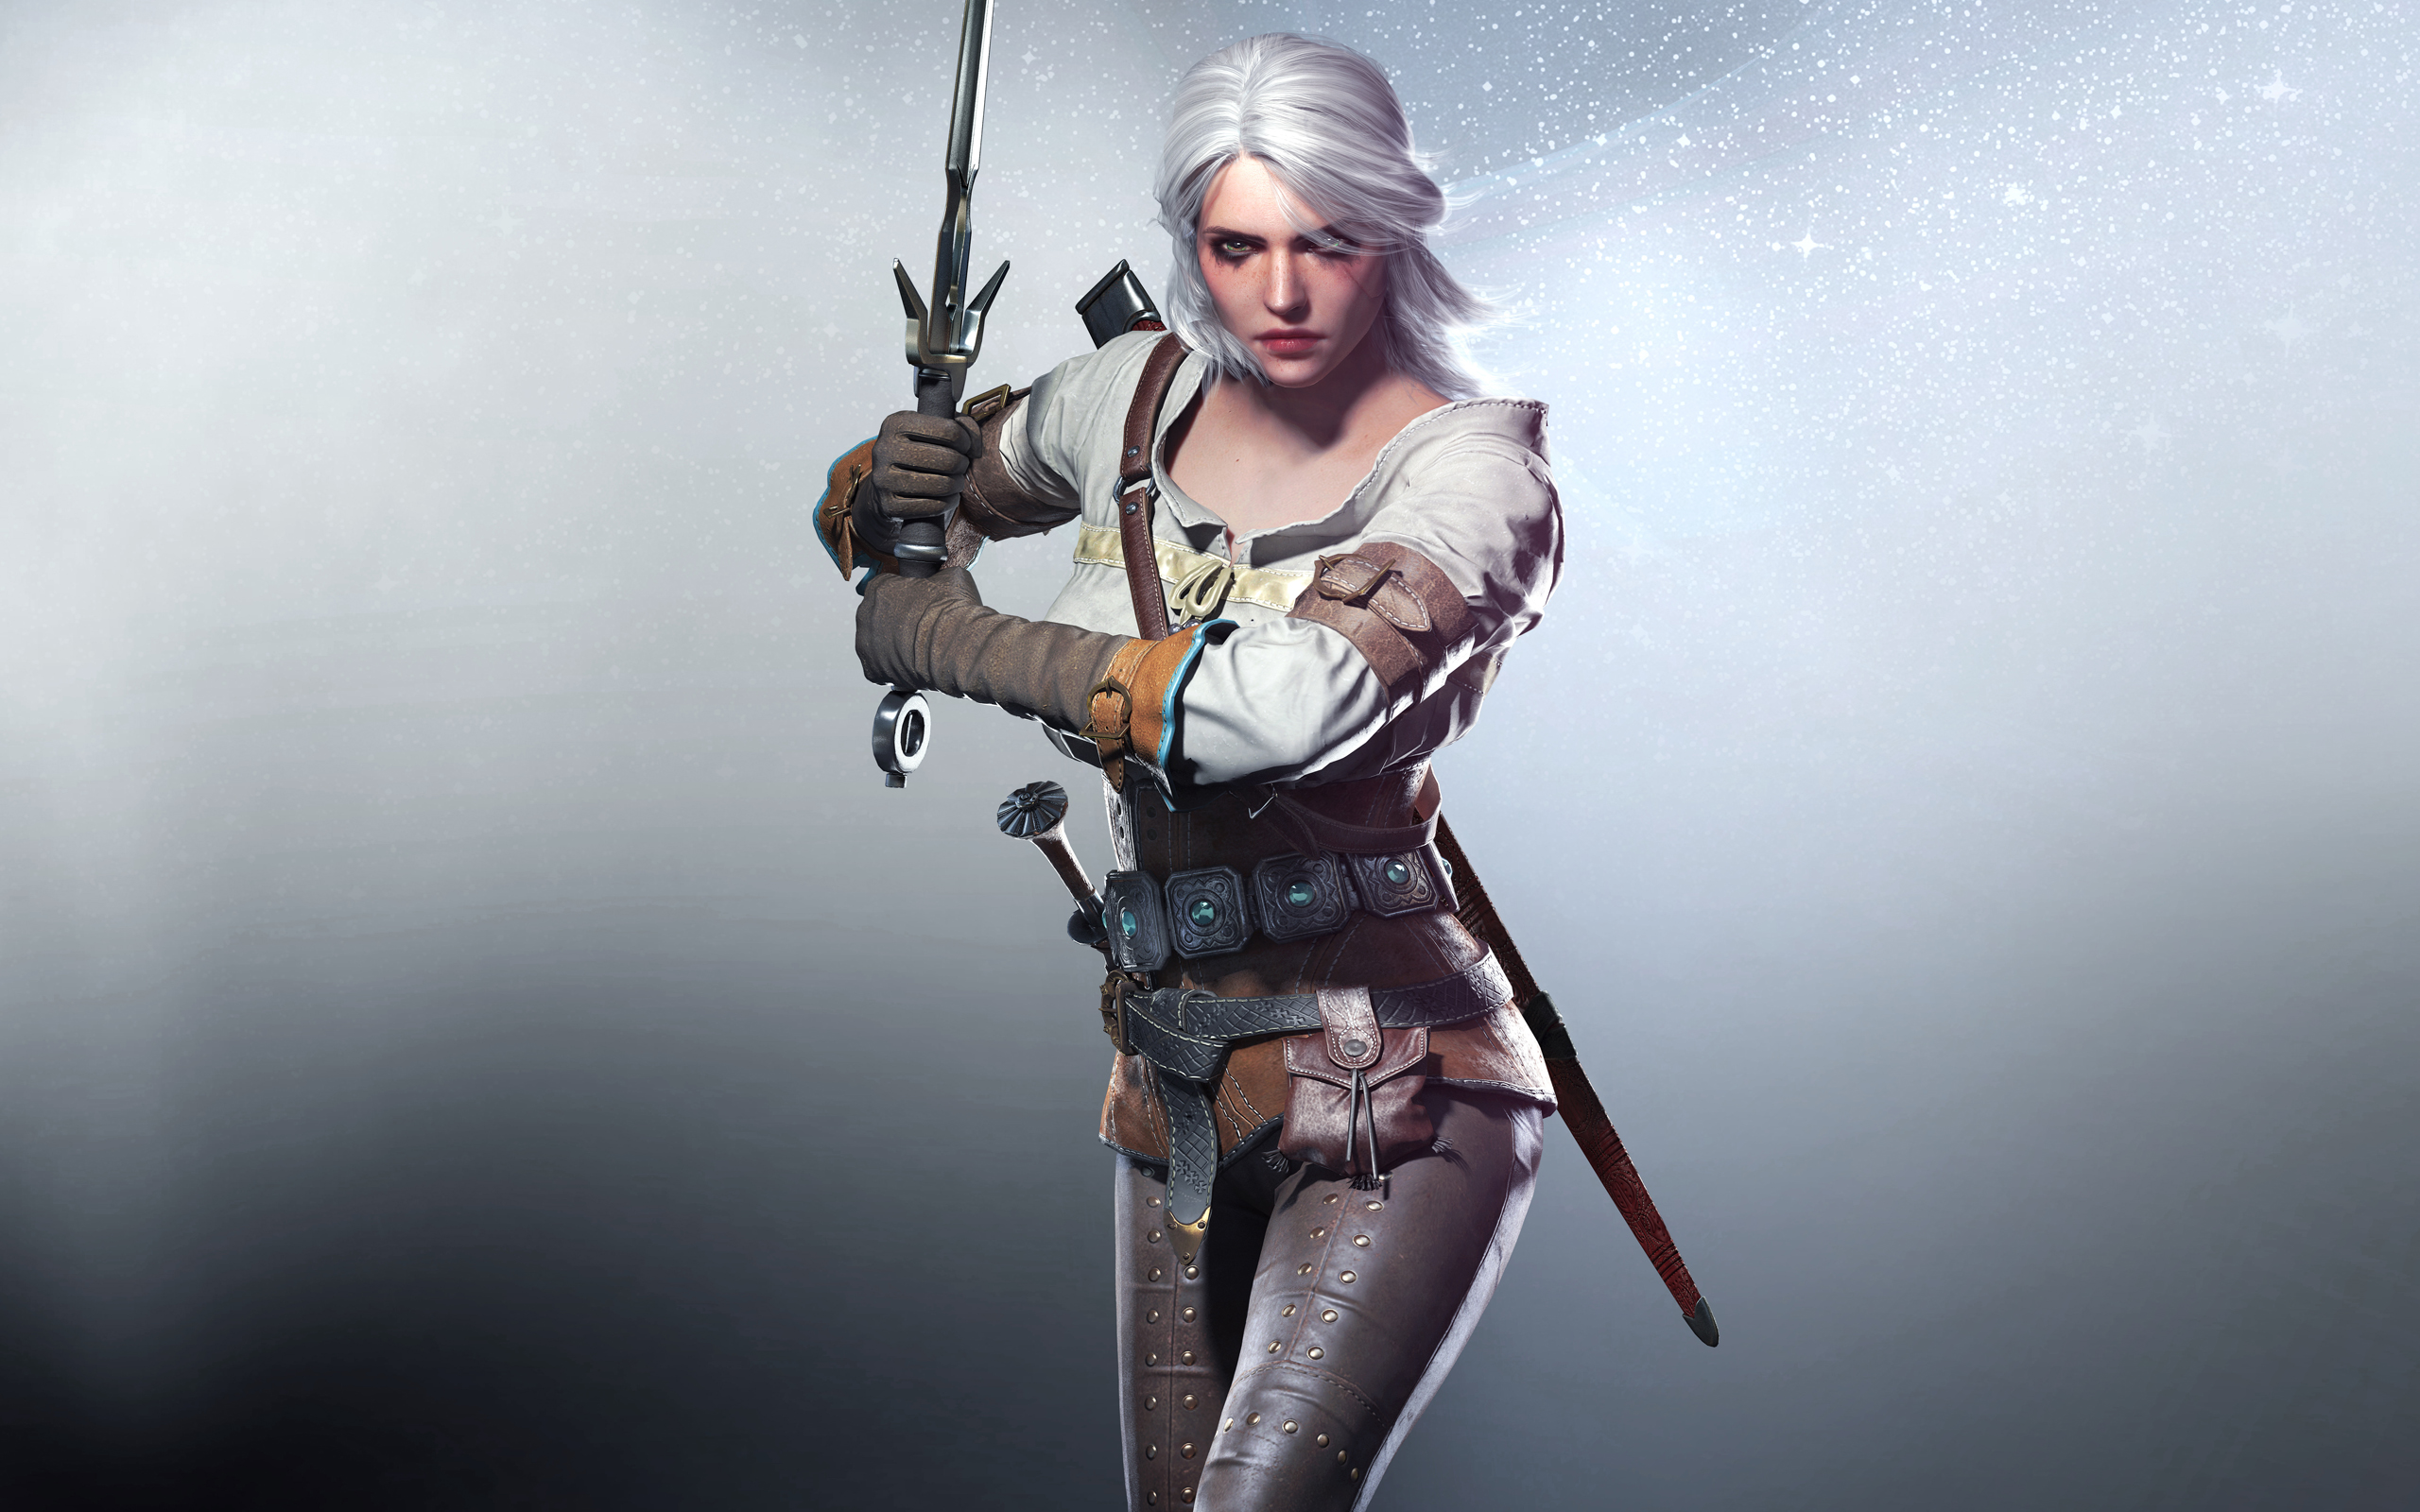 The Witcher 3 Mod Provides 5 to10 FPS Boost for AMD Graphics Cards